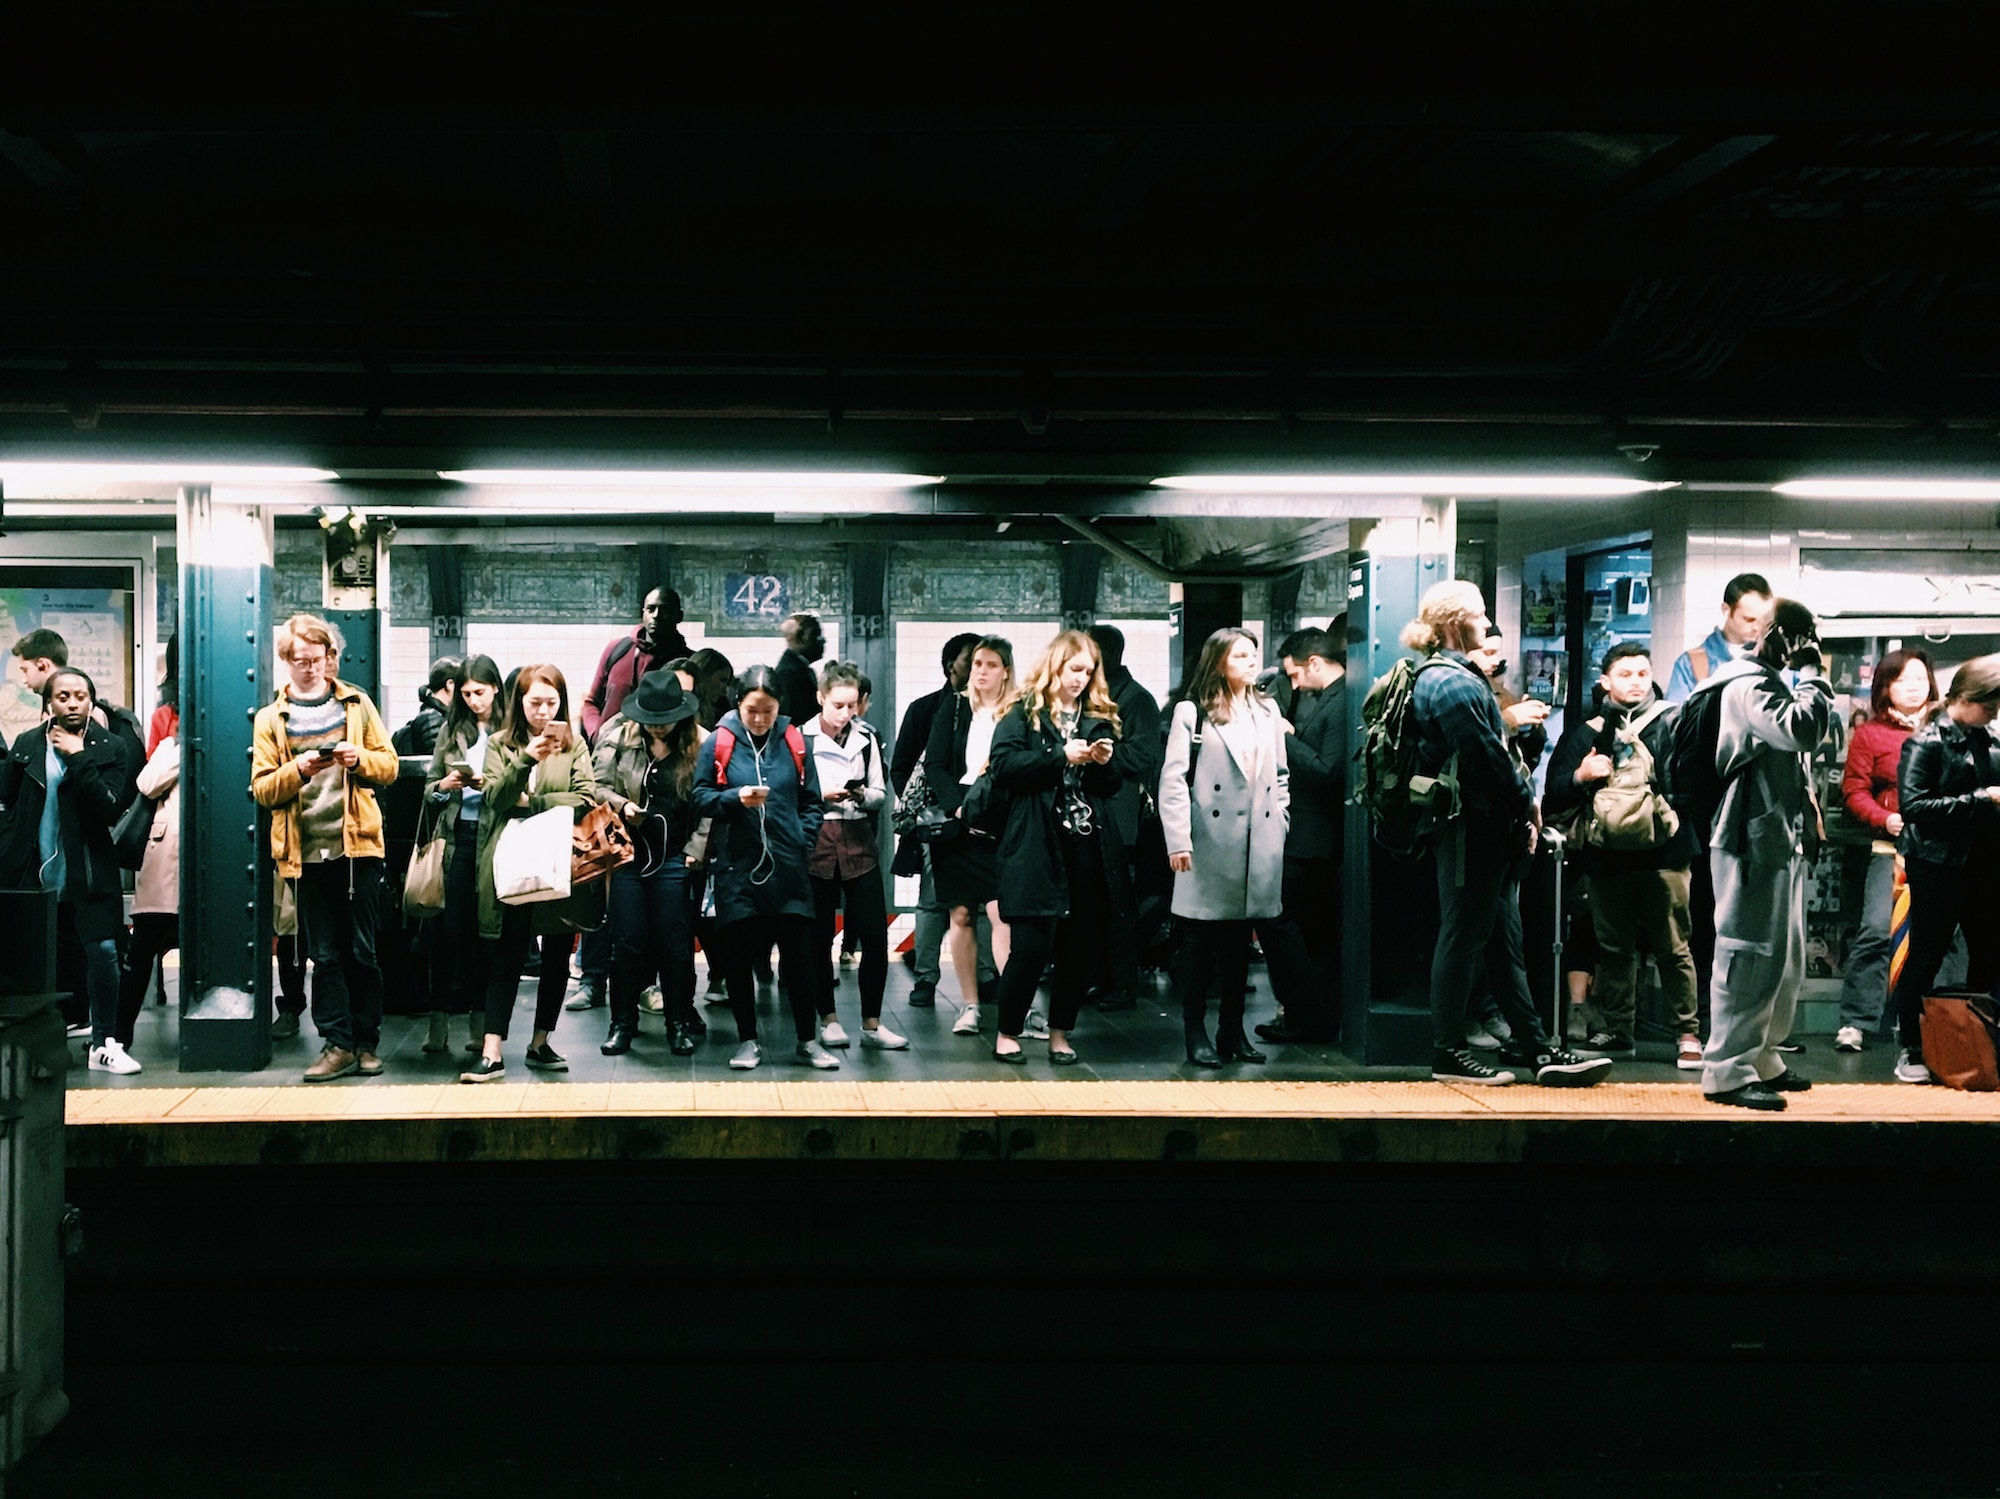 People waiting for a subway train